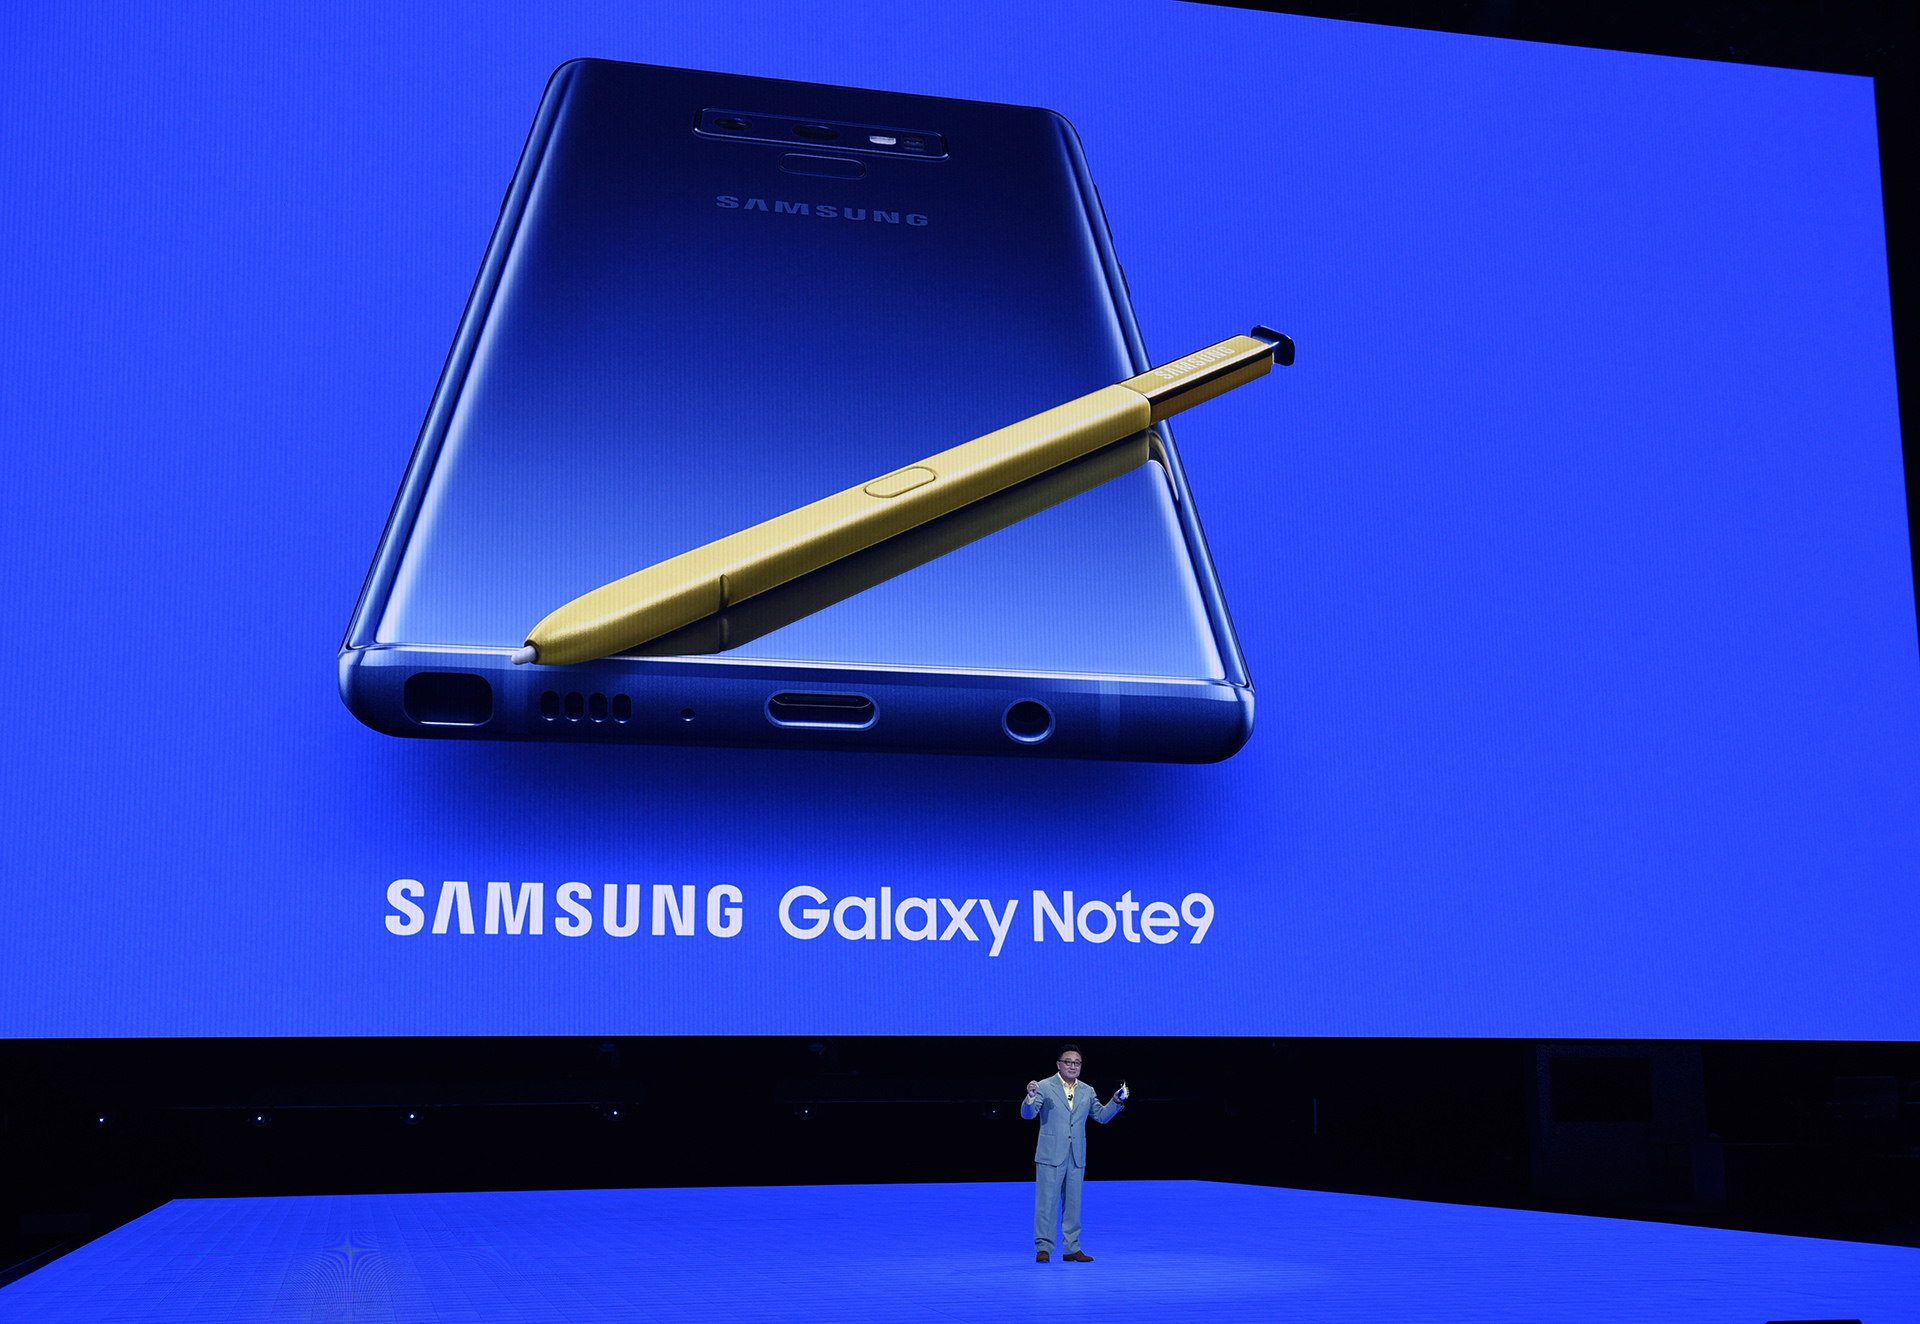 DJ Koh, president and CEO of Samsung Electronics, introduces the new Samsung Galaxy Note 9 smartphone at the Barclays Center on August 9, 2018 in the Brooklyn borough of New York City. / AFP PHOTO / TIMOTHY A. CLARY